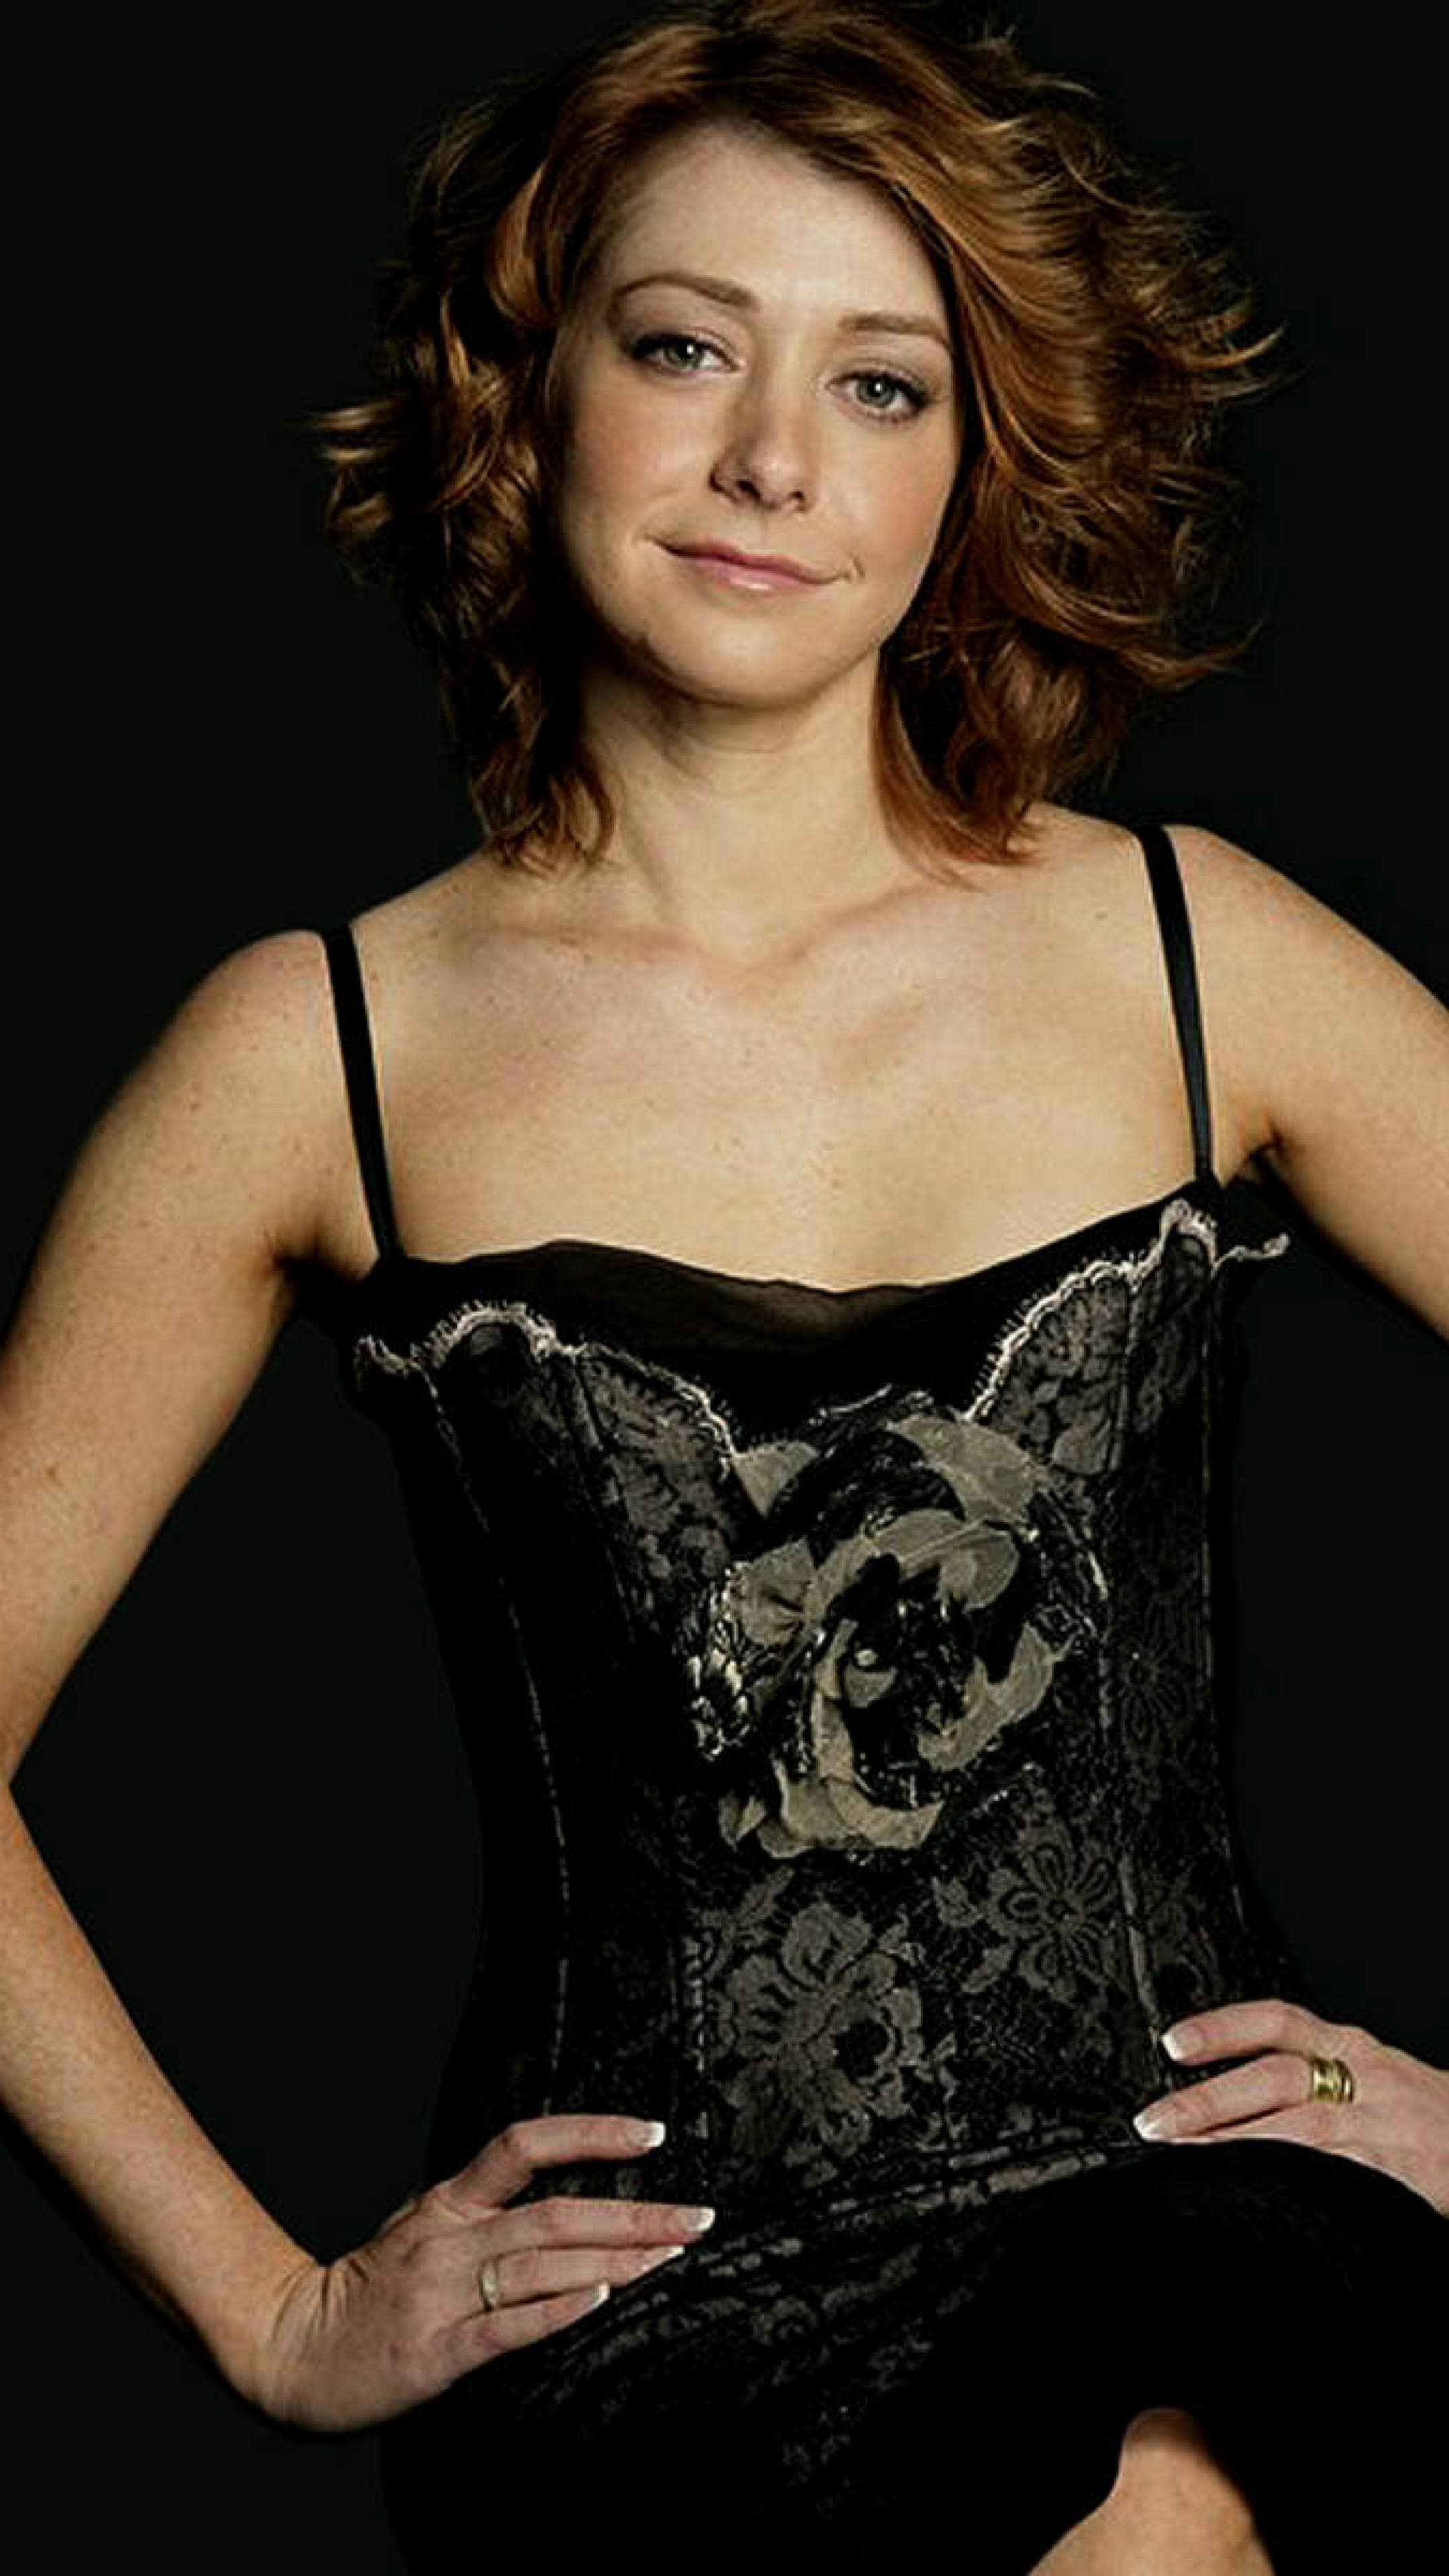 Alyson Hannigan Pokies 49 hot pictures of alyson hannigan which will make you fall